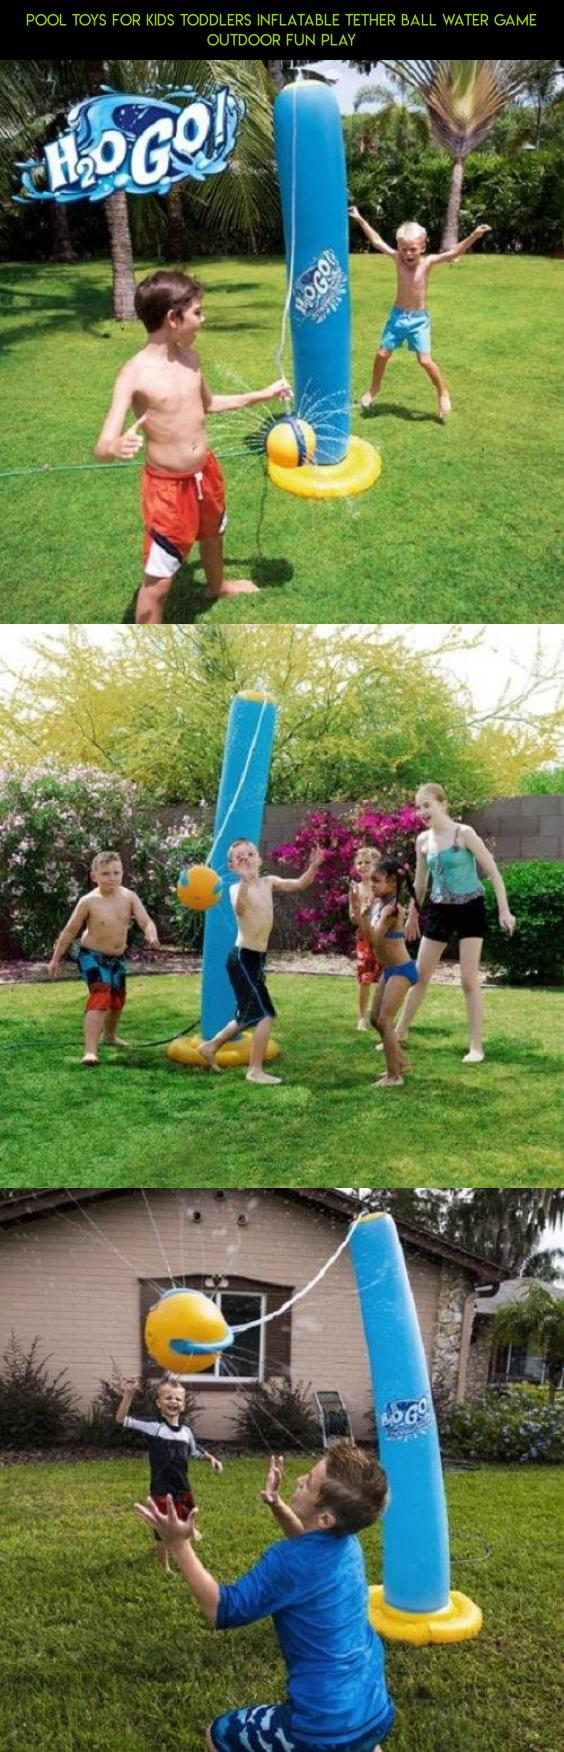 pool toys for kids toddlers inflatable tether ball water game